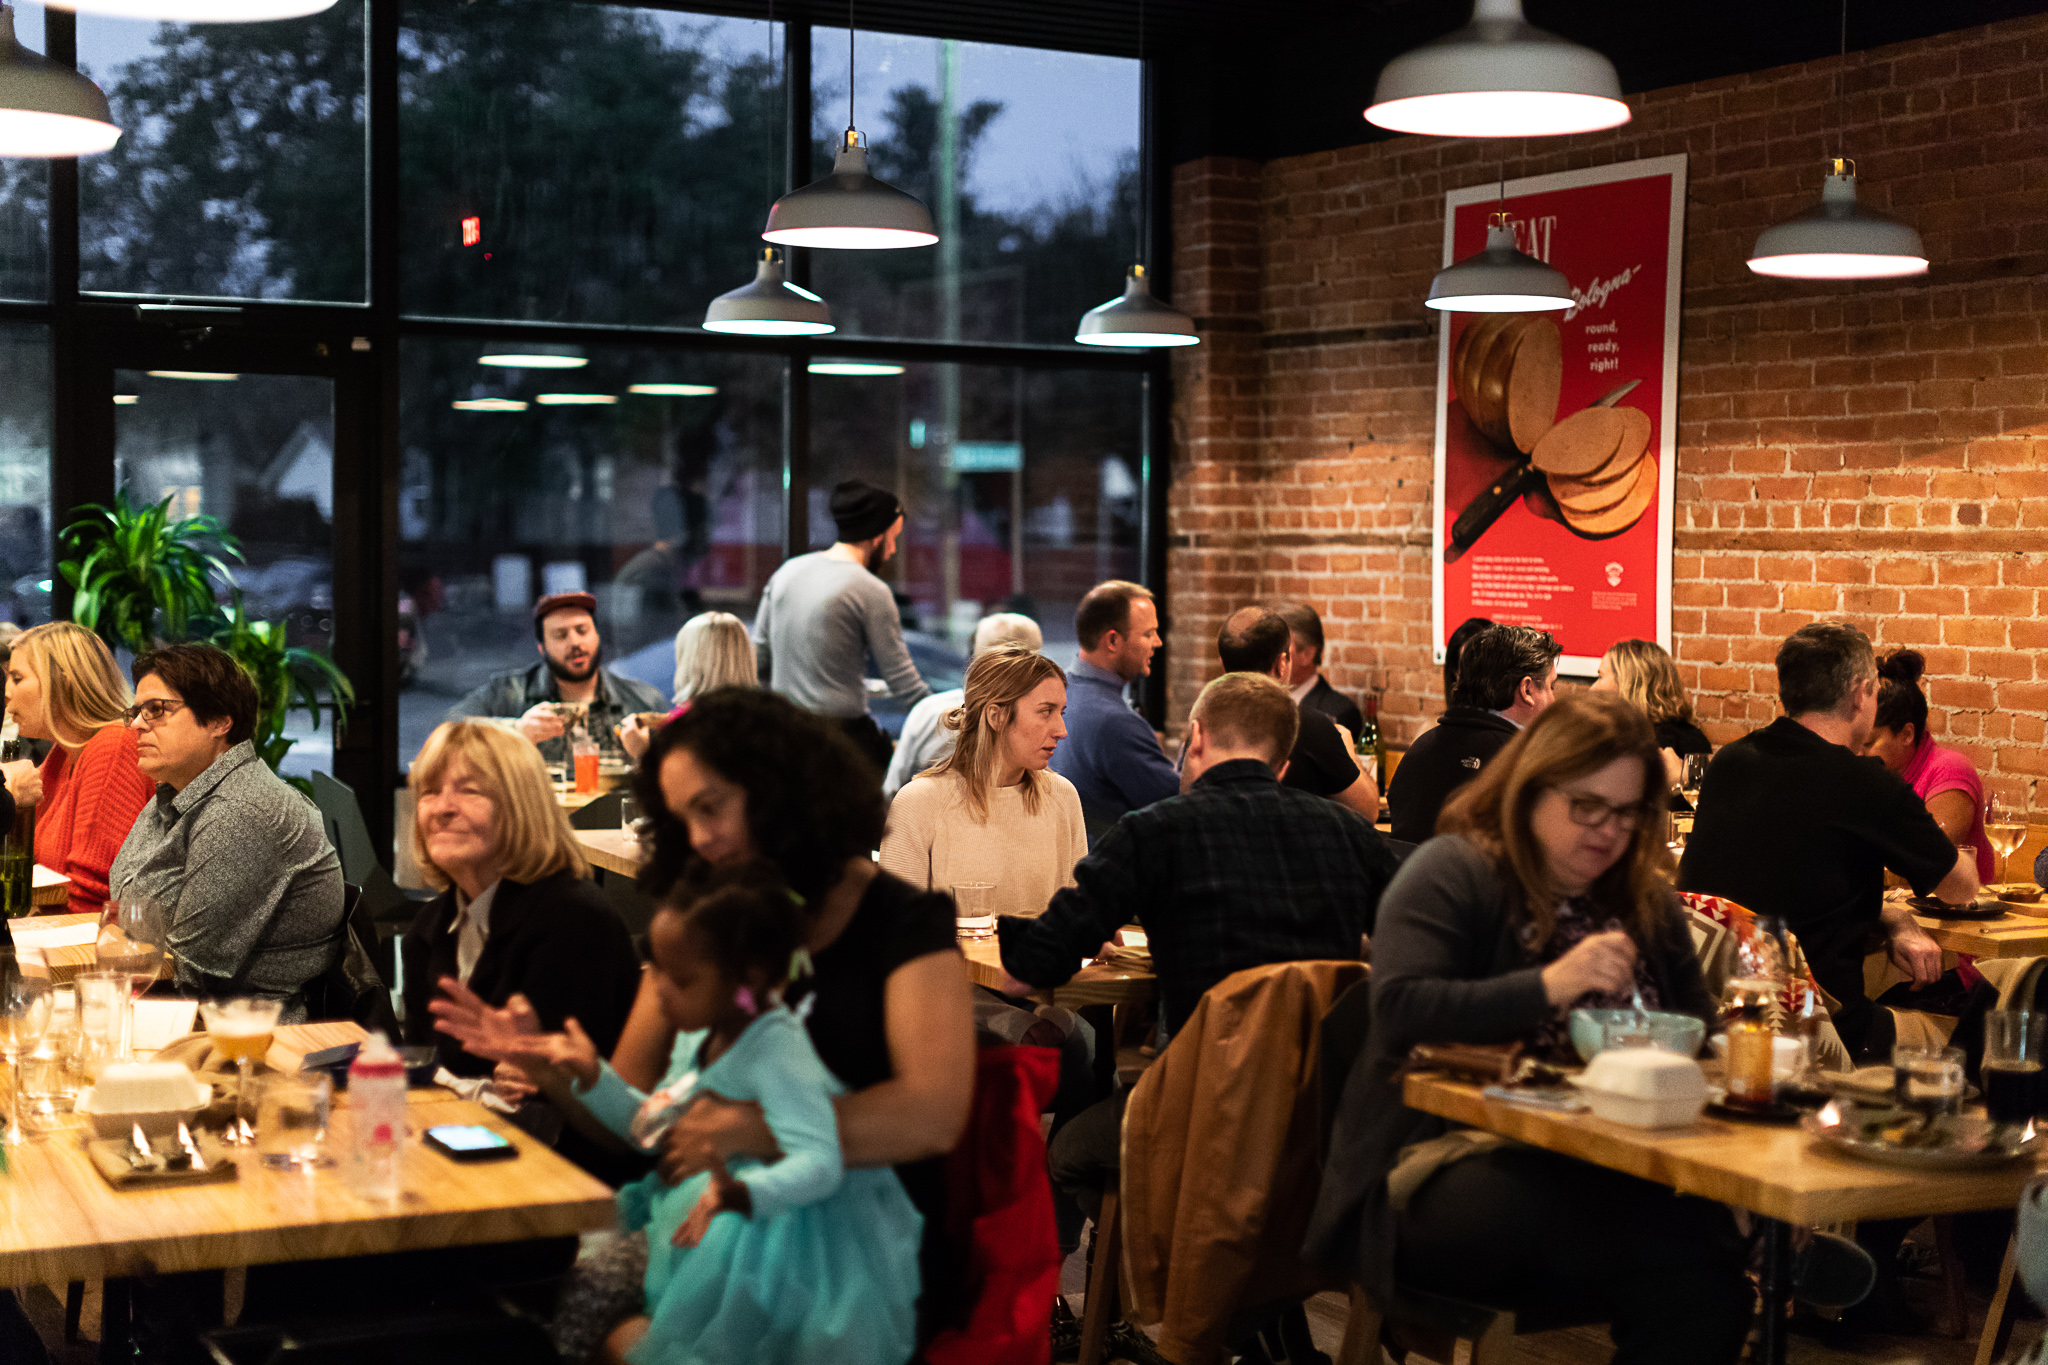 Customers fill the well-lit dining room at Marrow. The photo faces out towards the window and brick walls.